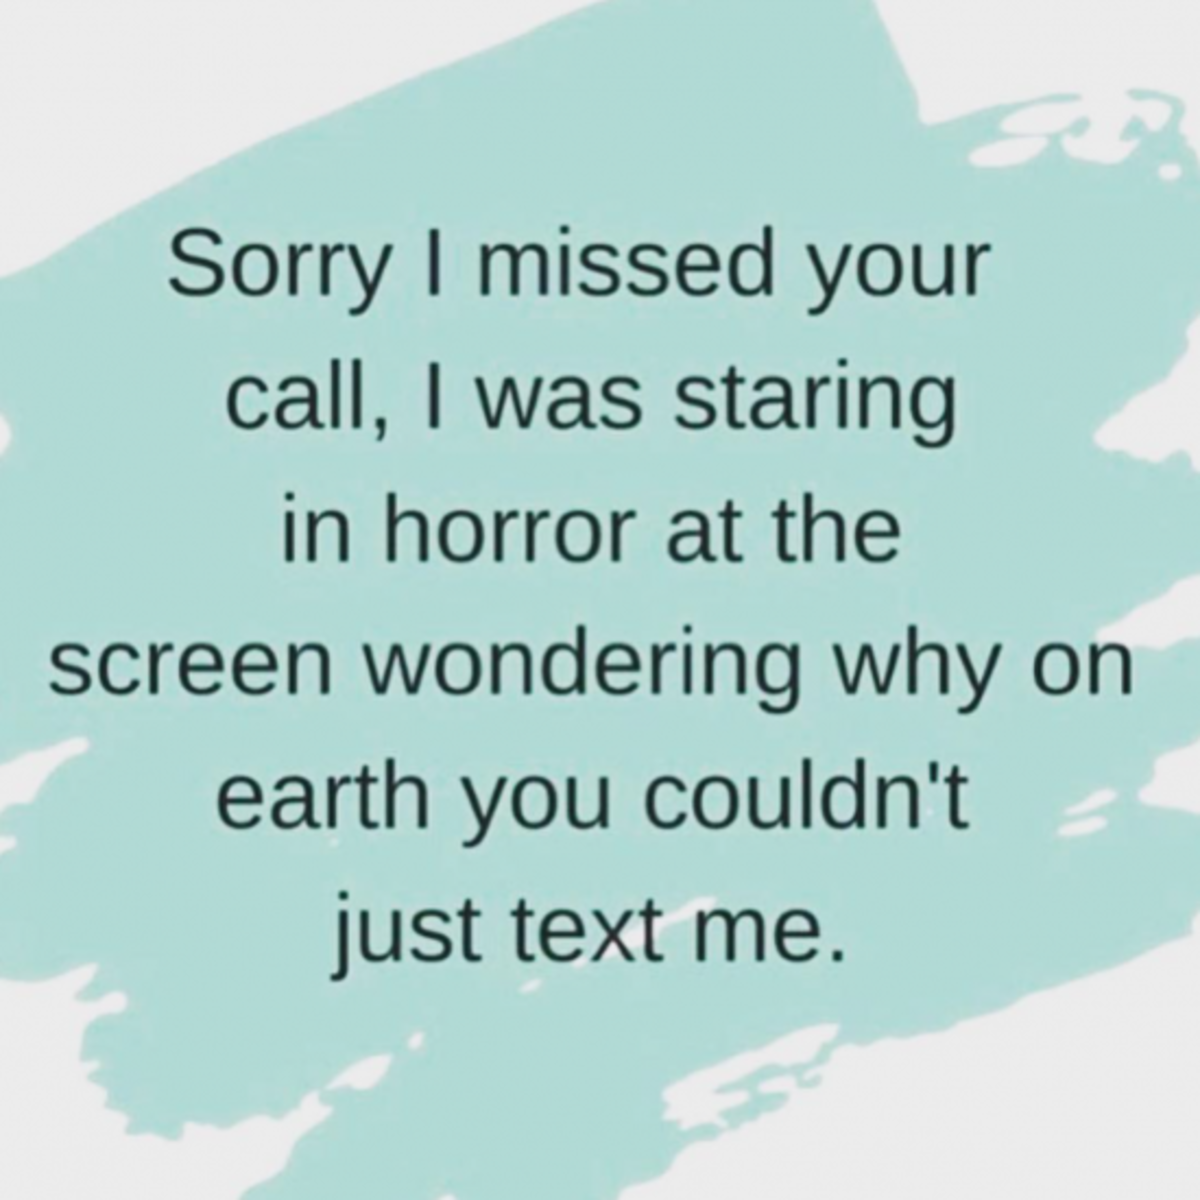 texting-a-blessing-or-a-curse